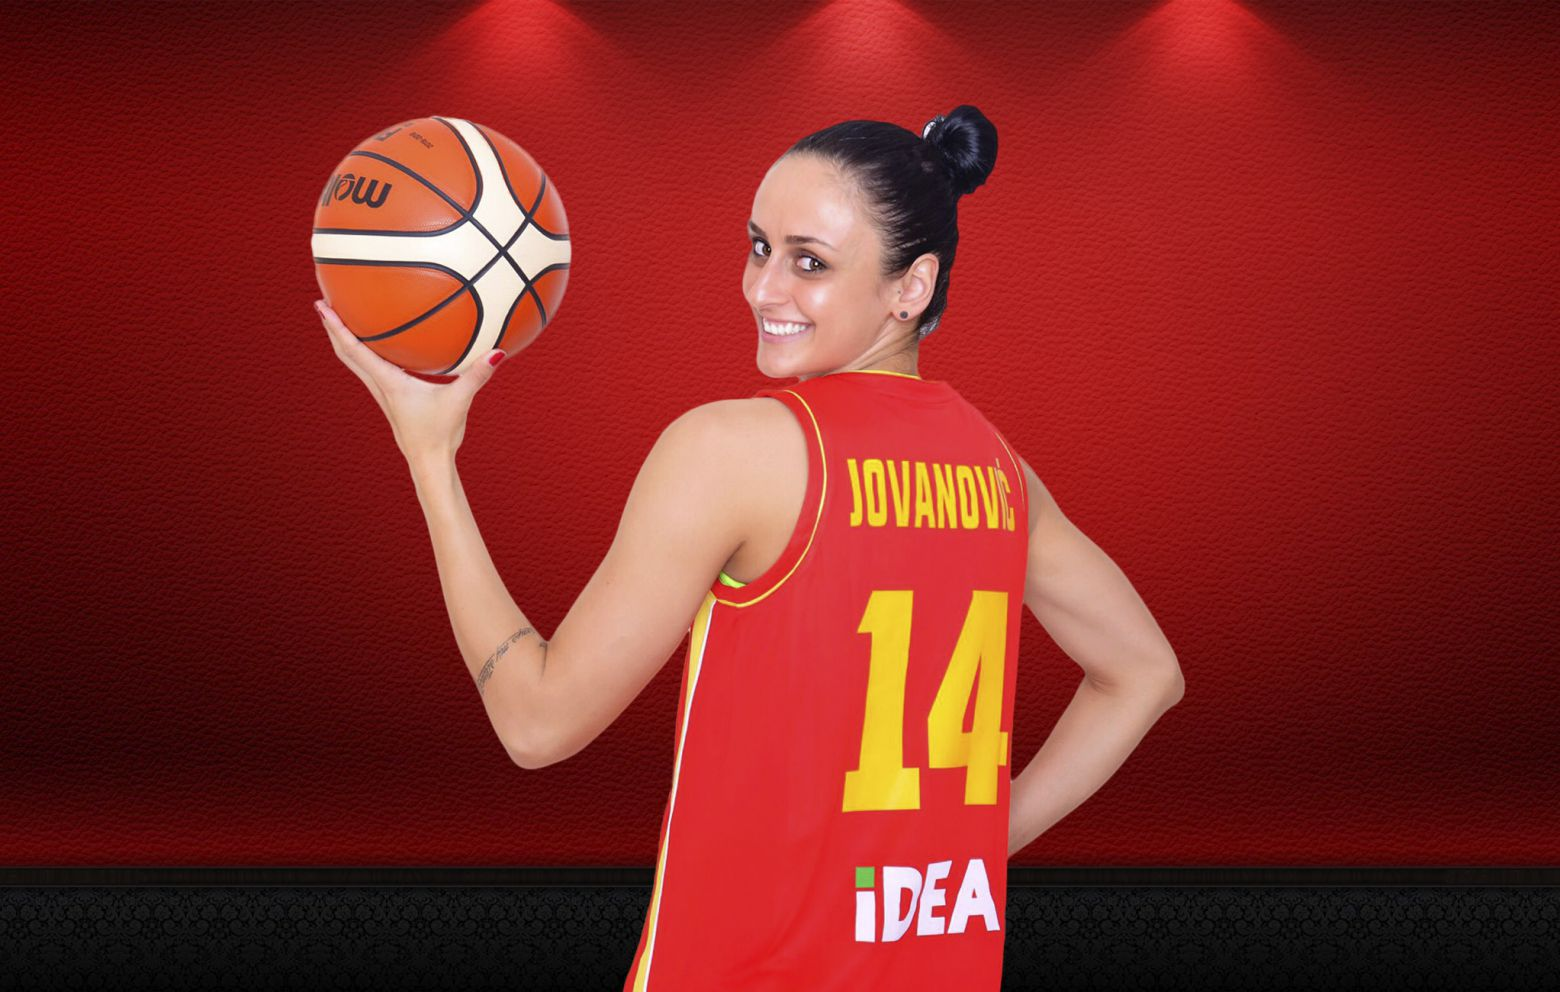 MILICA JOVANOVIC has signed in France with Nantes